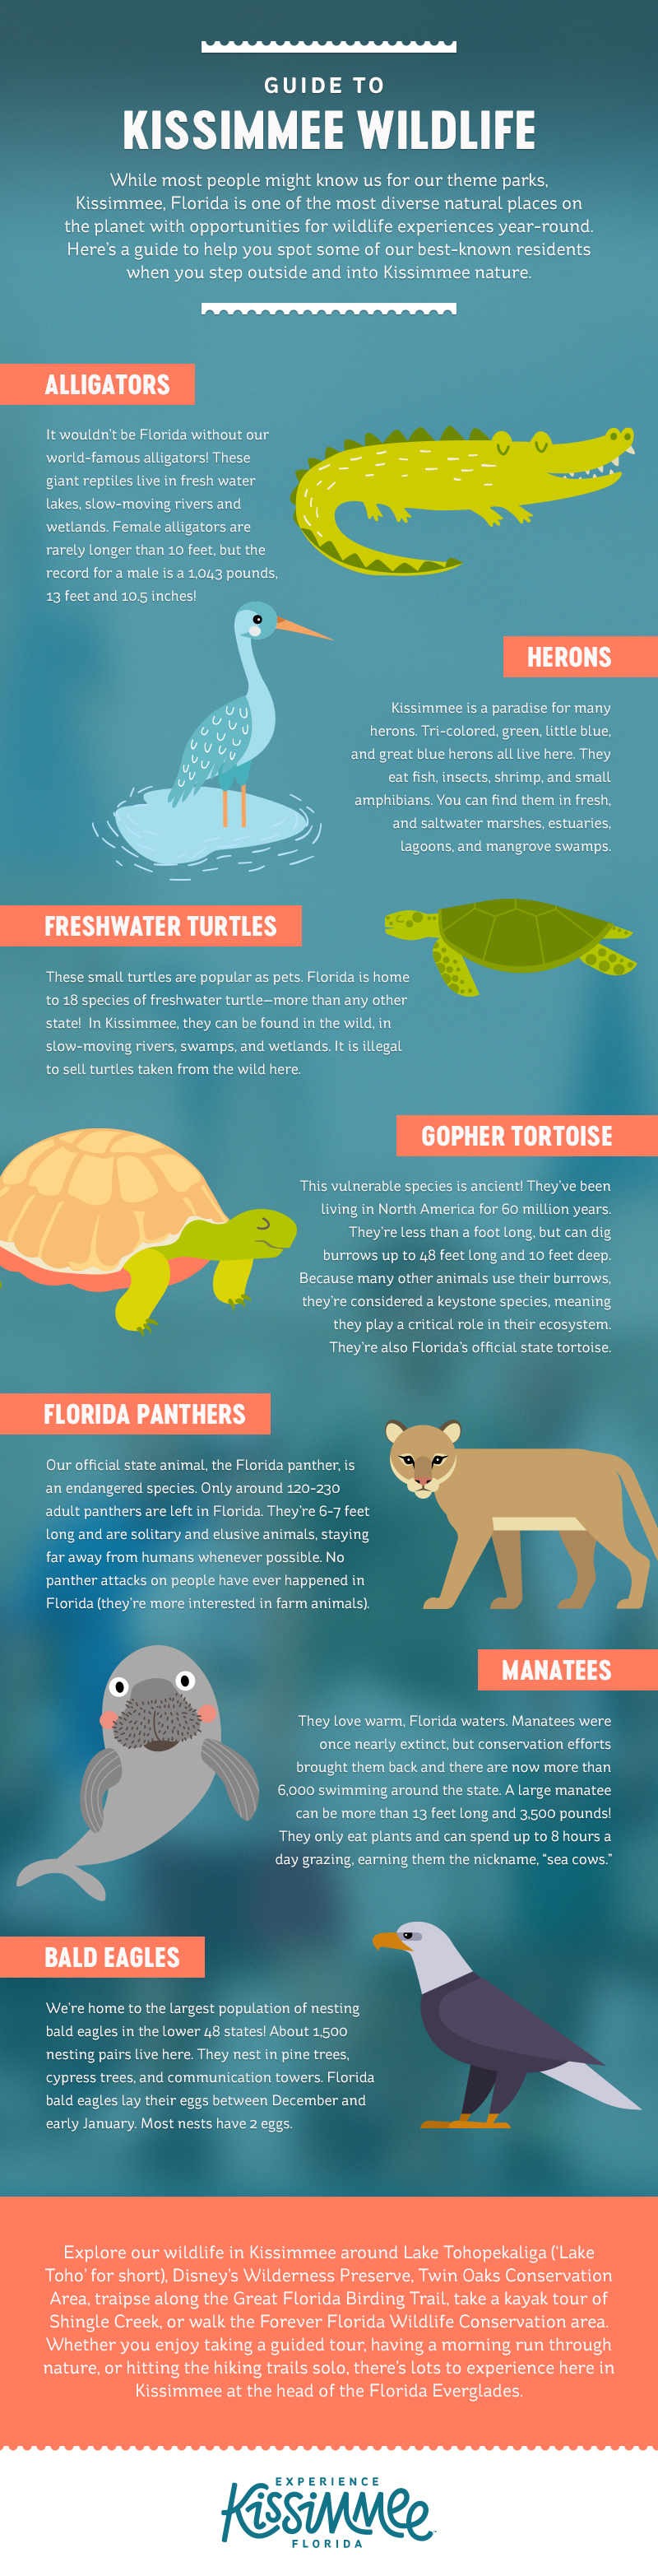 Guide to Kissimmee Wildlife Infographic